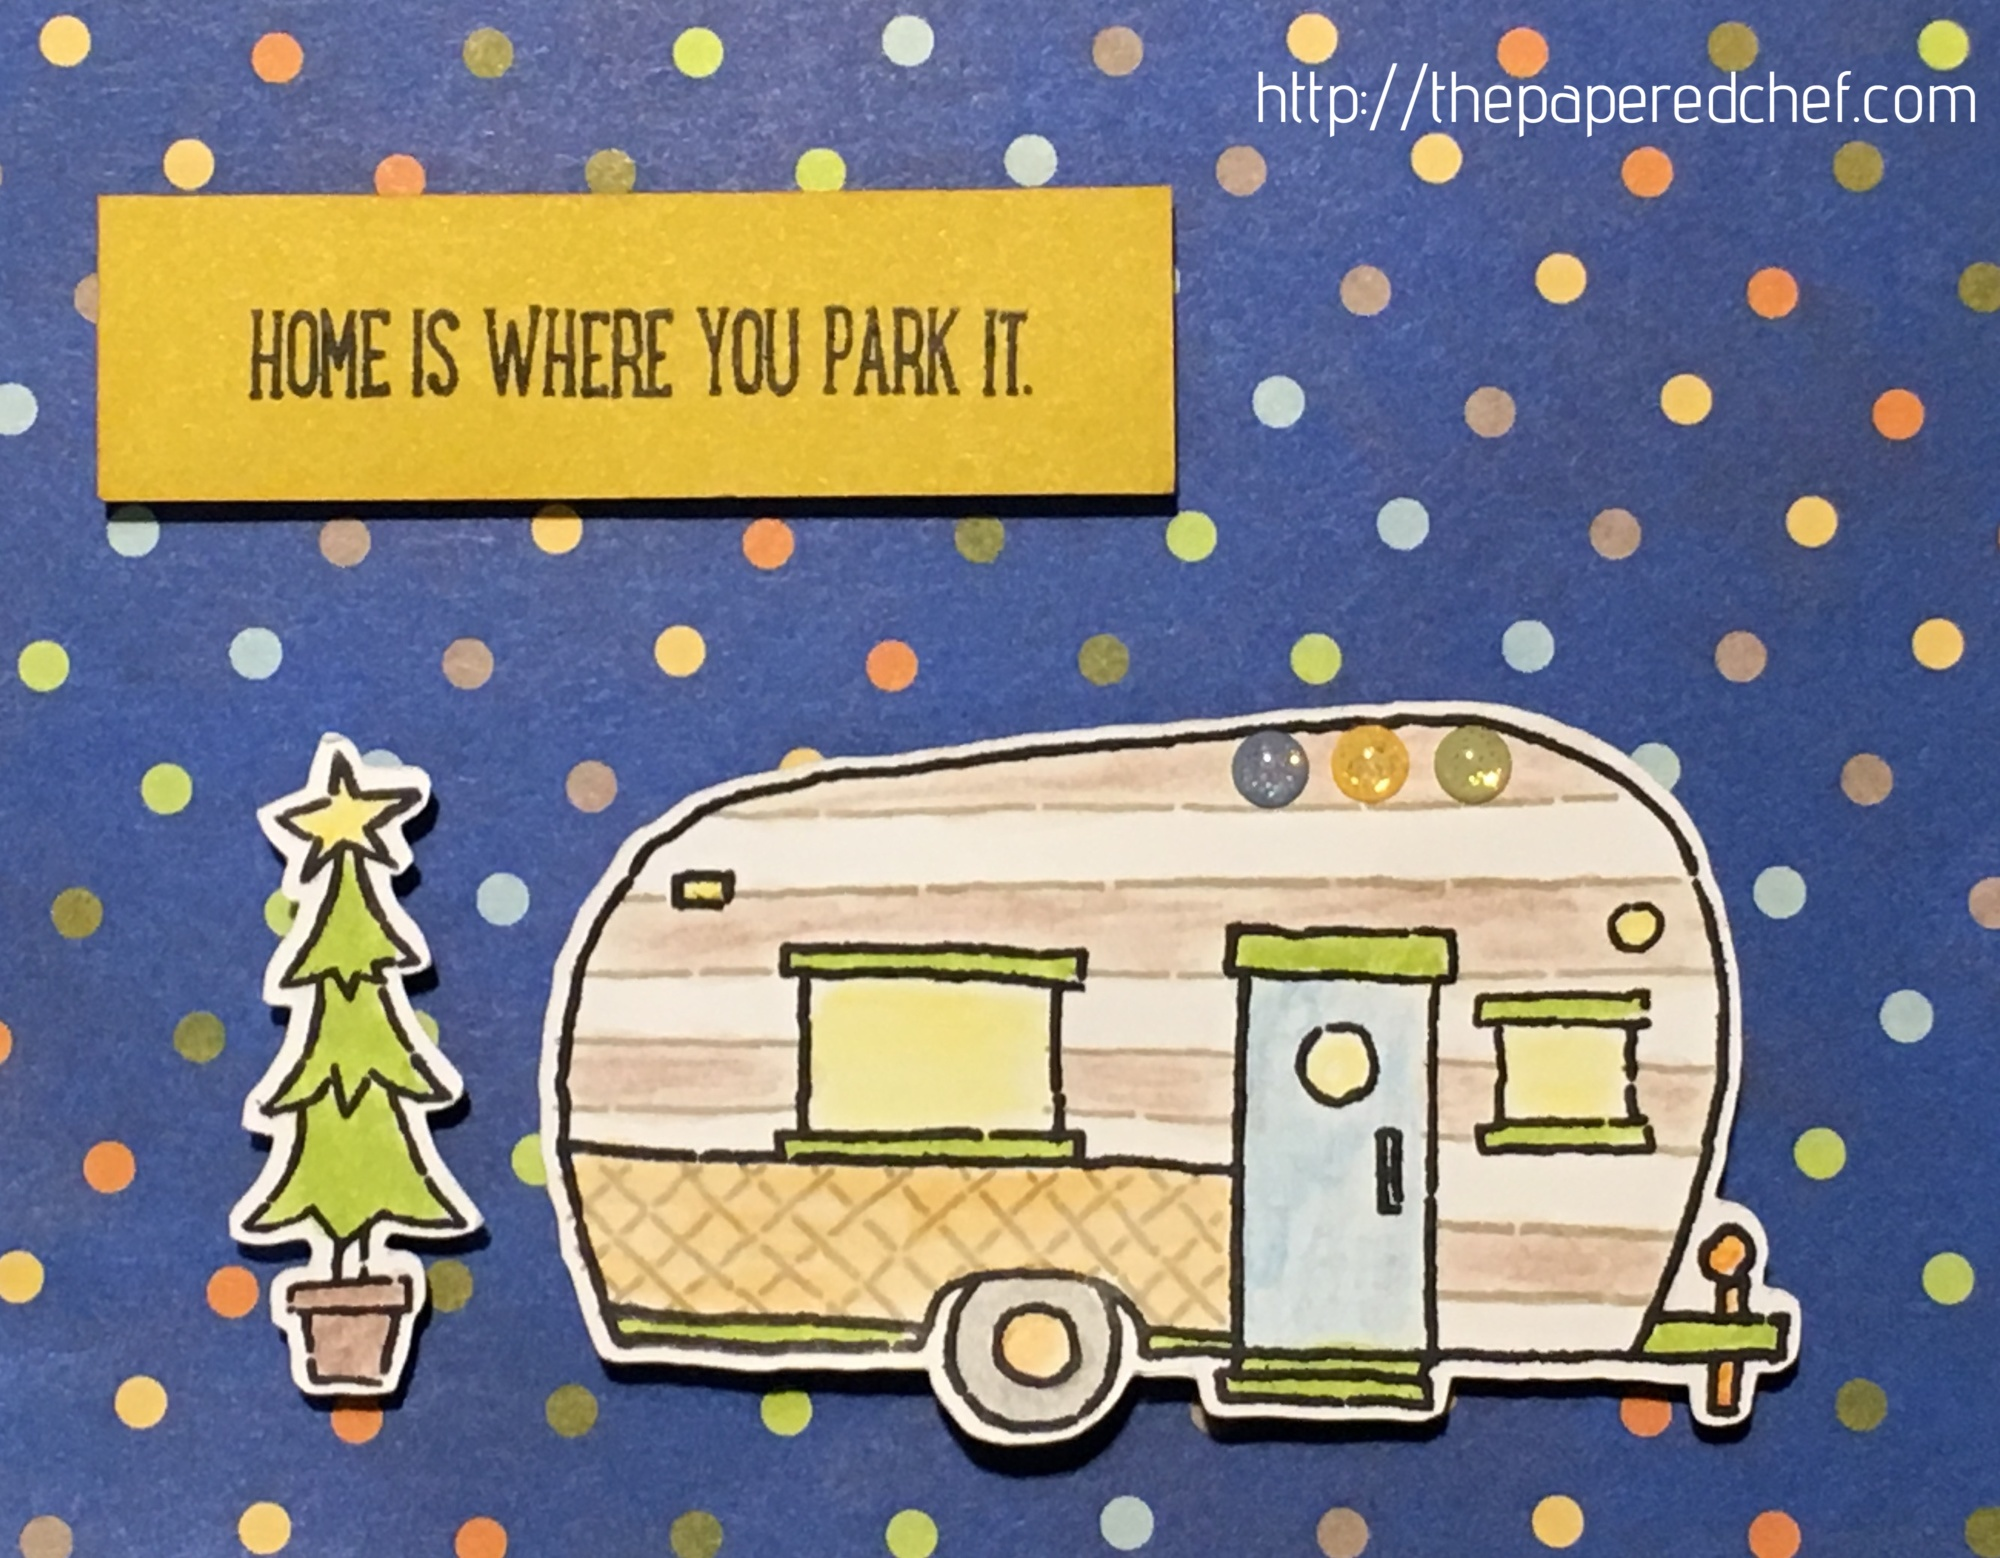 Glamper Greetings - Home is Where you Park It